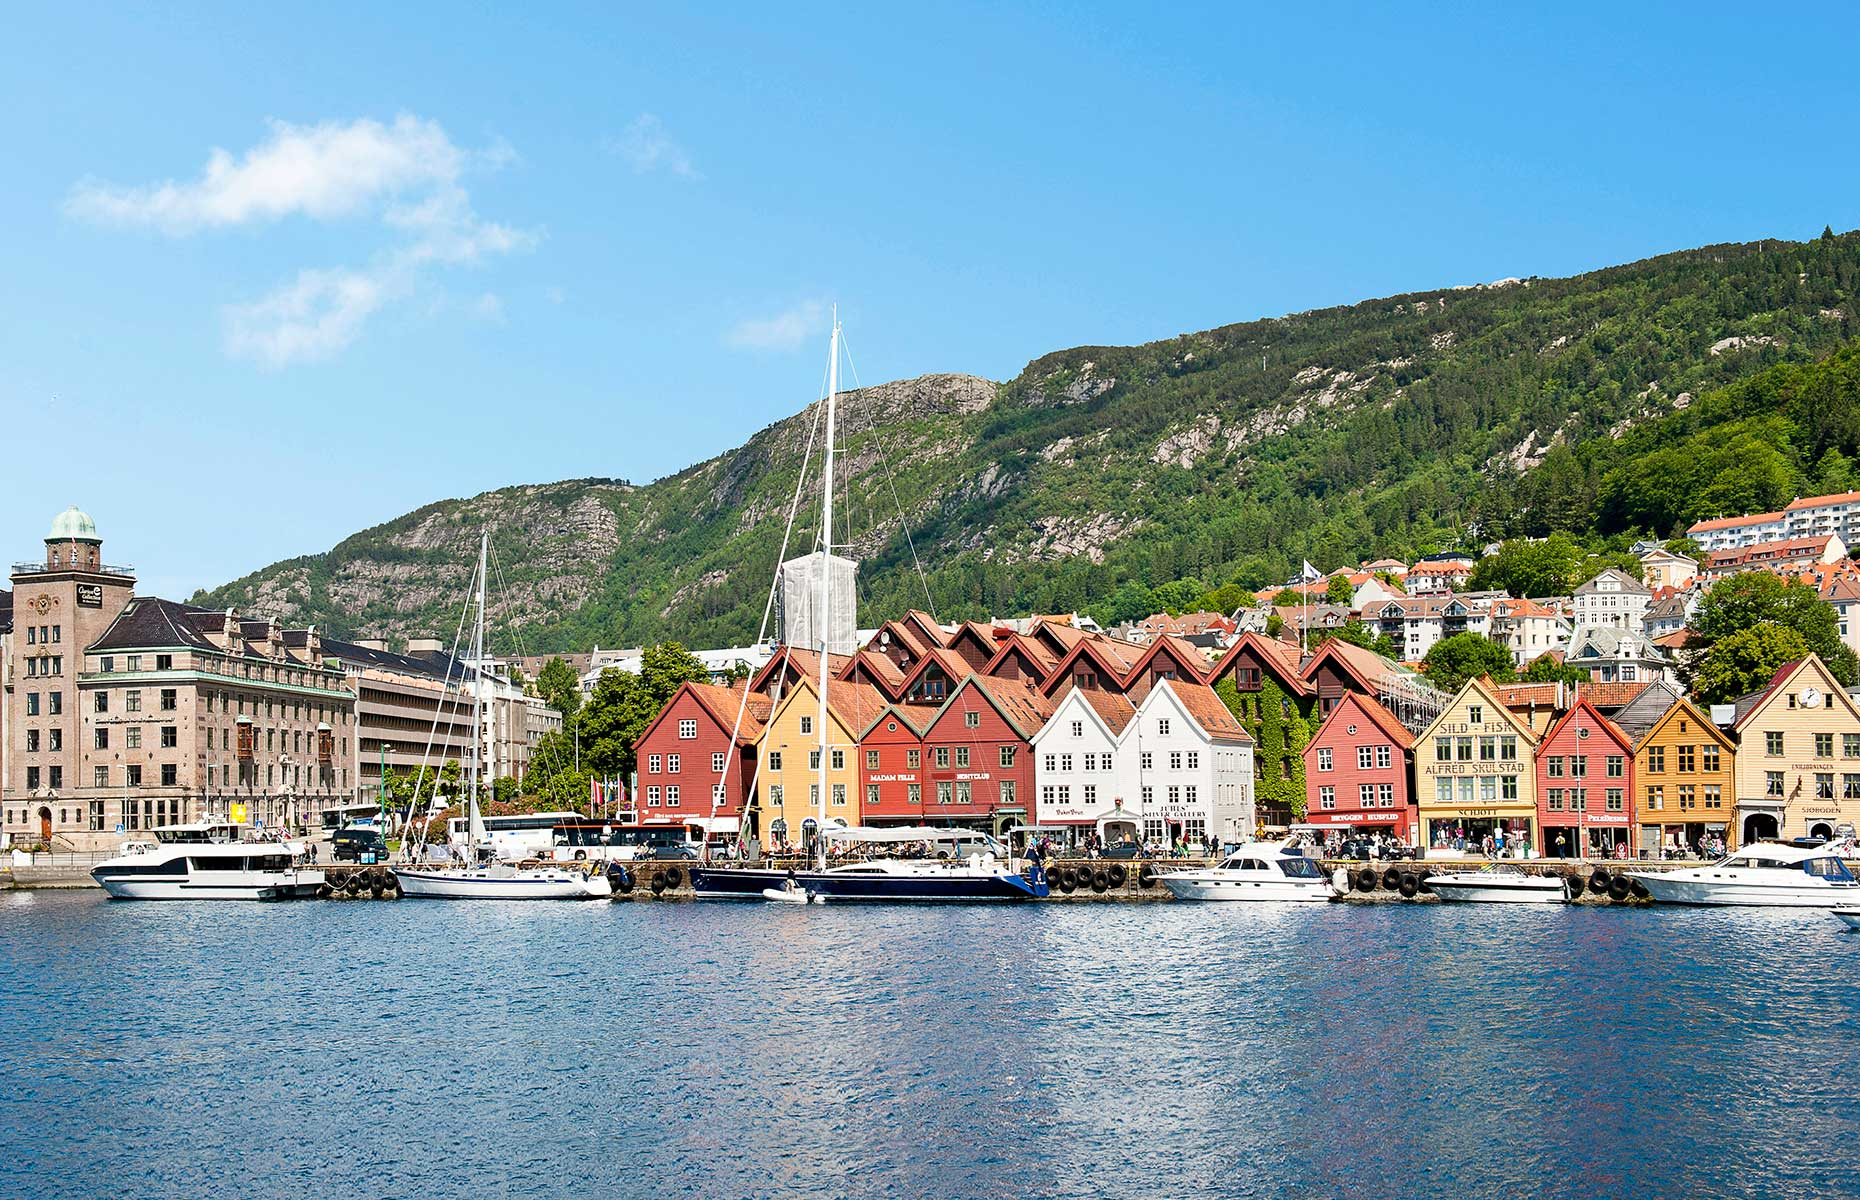 Bergen (Image: Courtesy of MSC)